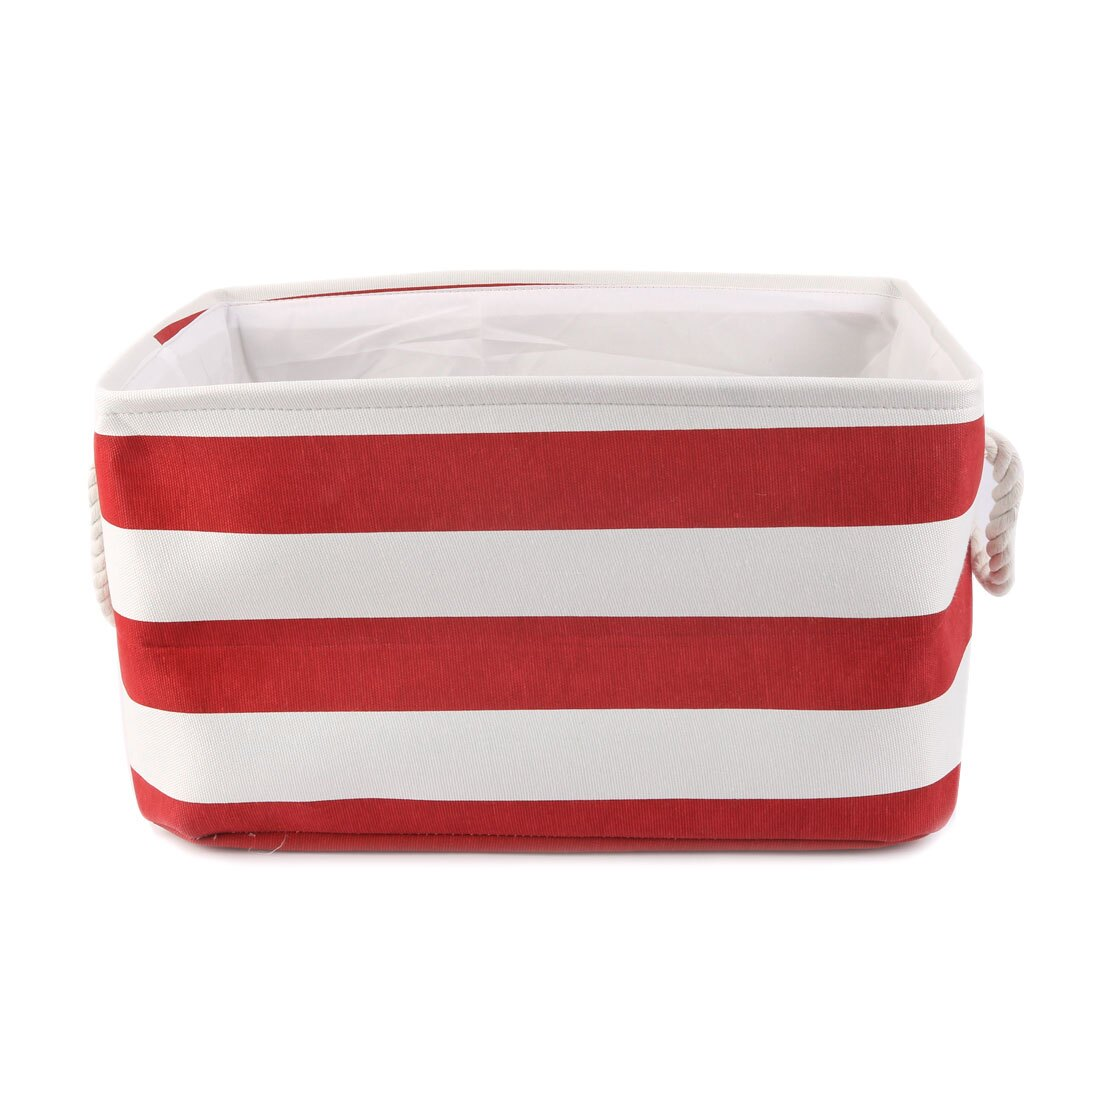 Home Collapsible Fabric Storage Basket Bin Box Organizer With Handle Red M 0